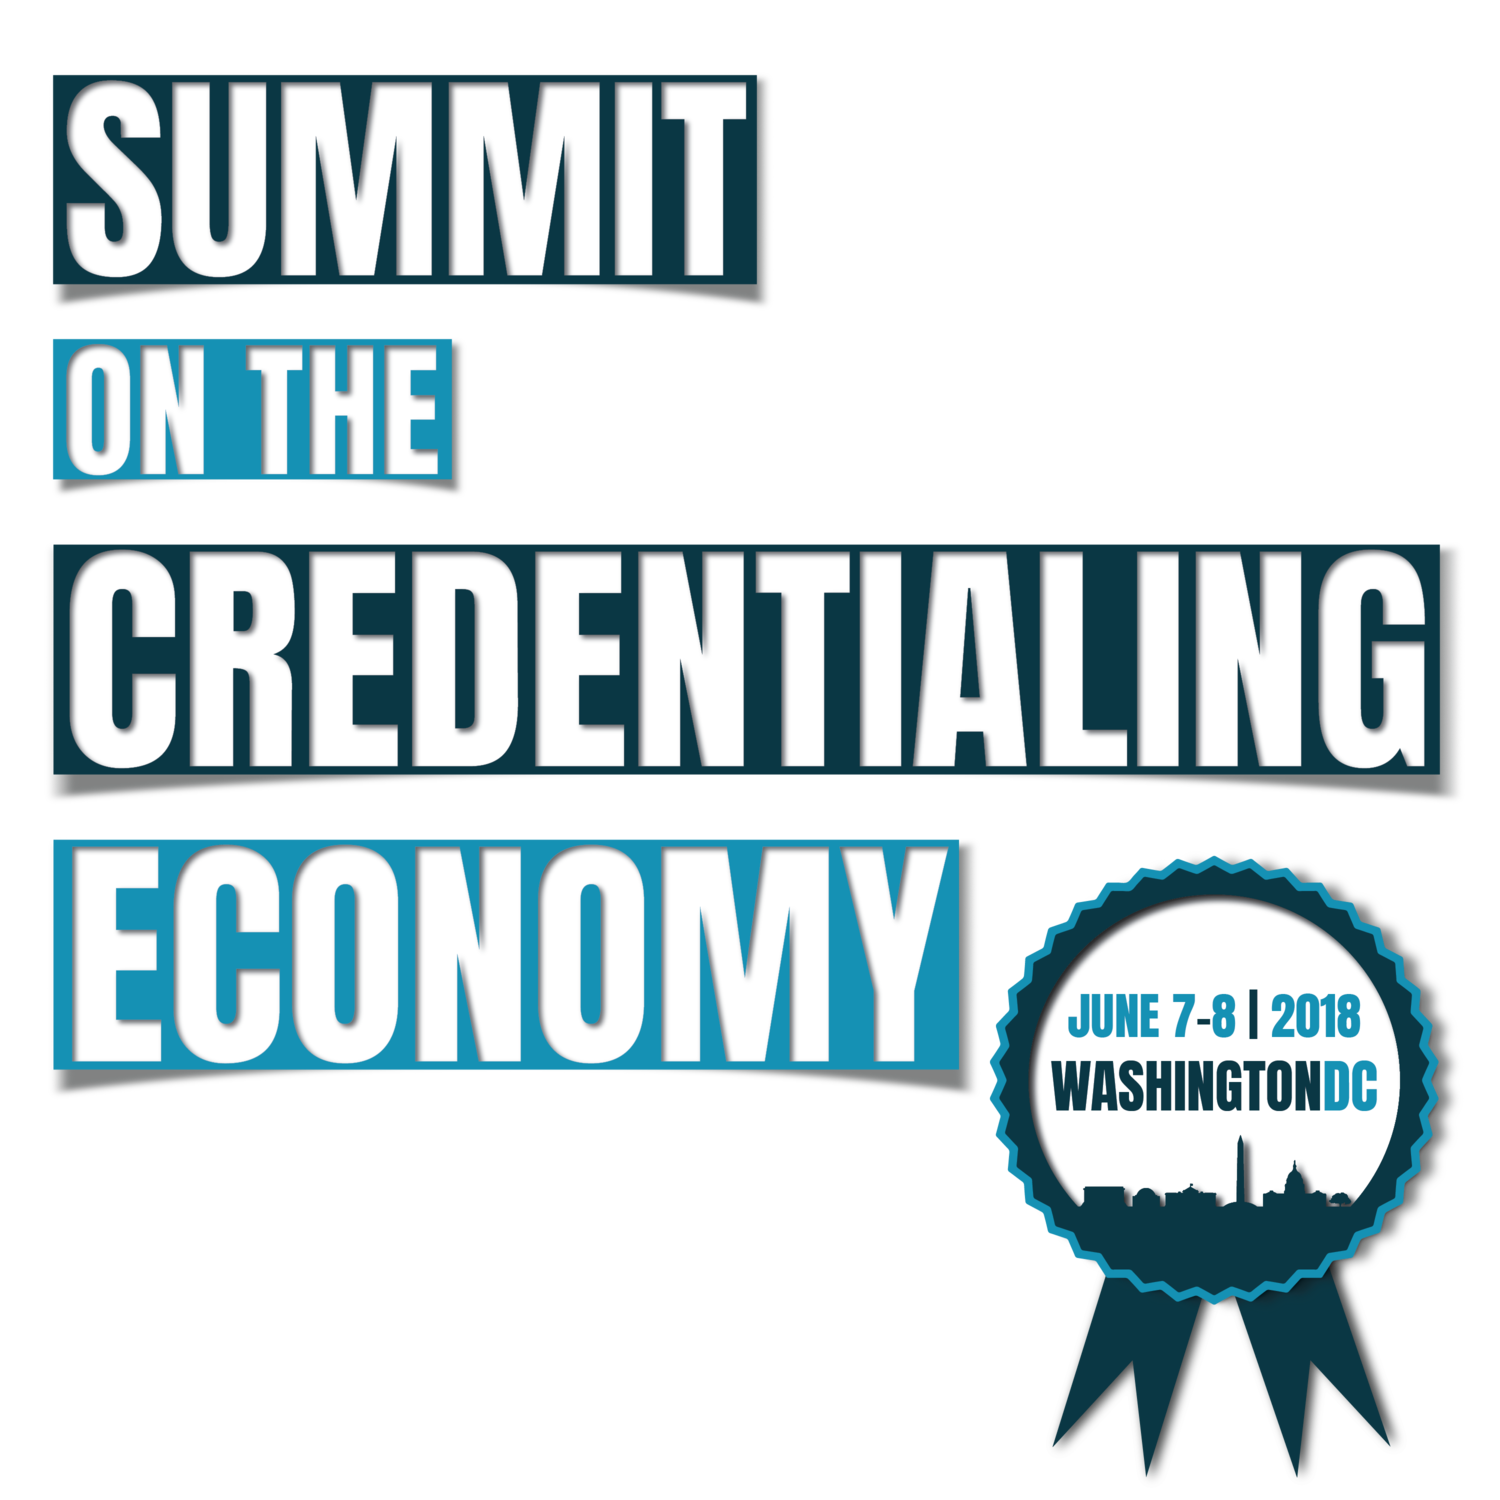 Summit on the Credentialing Economy